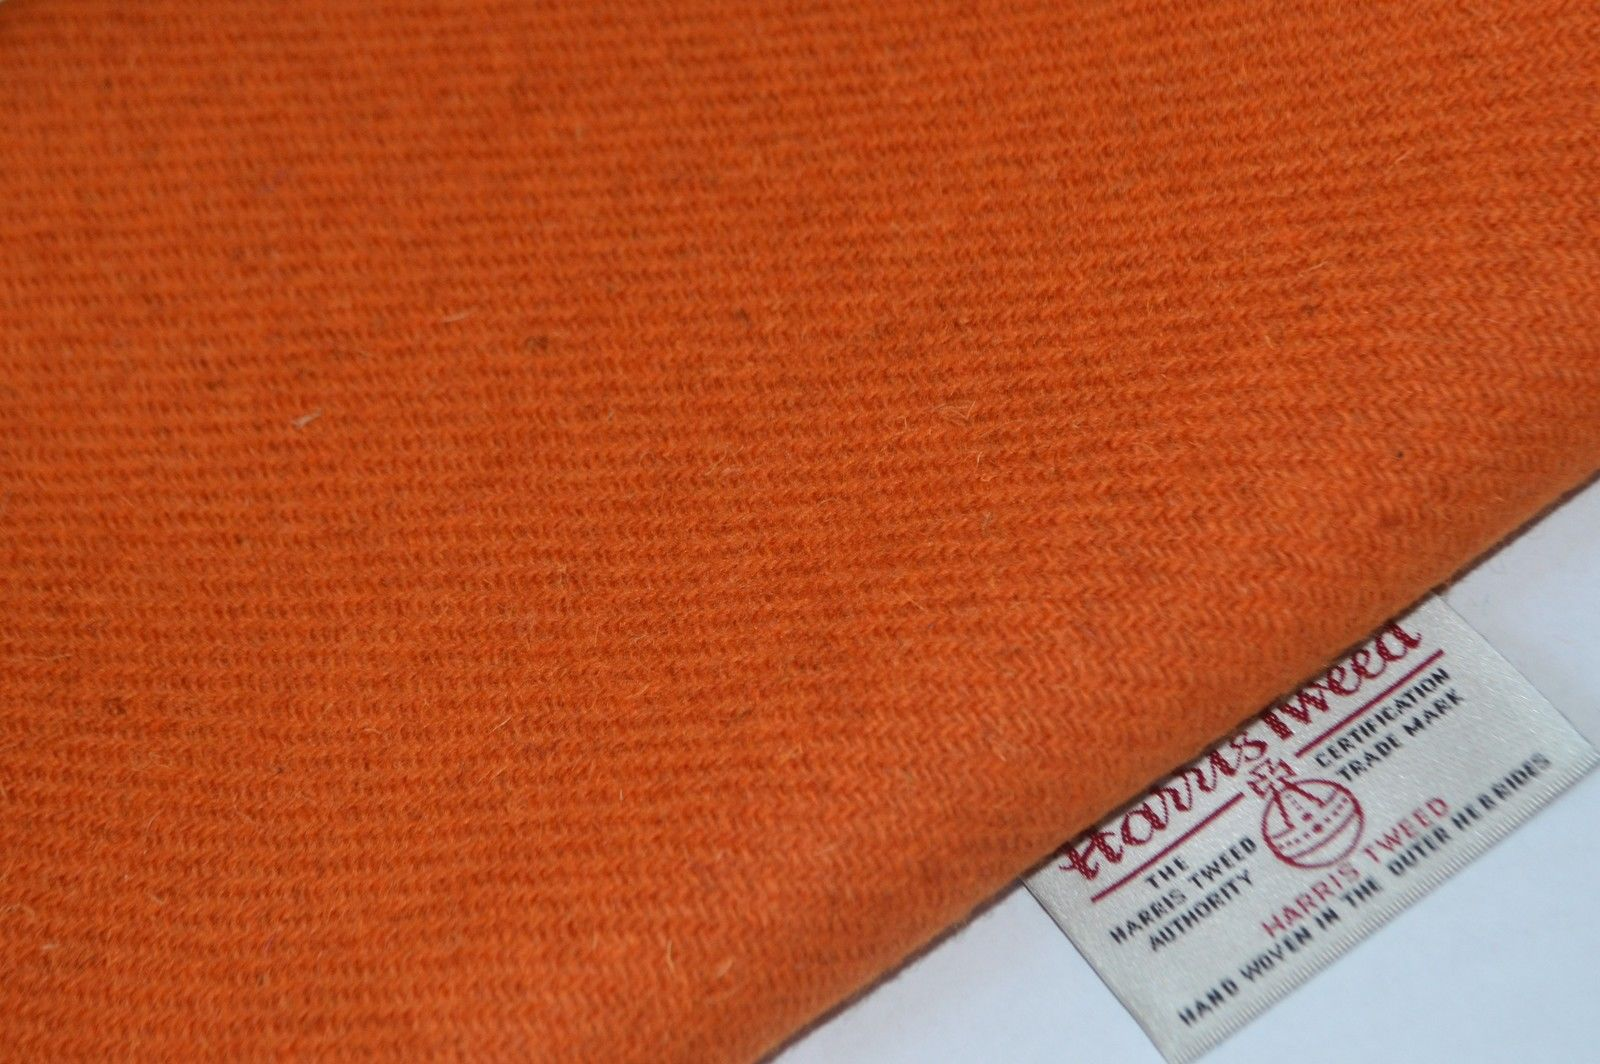 HARRIS TWEED FABRIC /& LABELS 100/% wool tartan herringbone upholstery patchwork